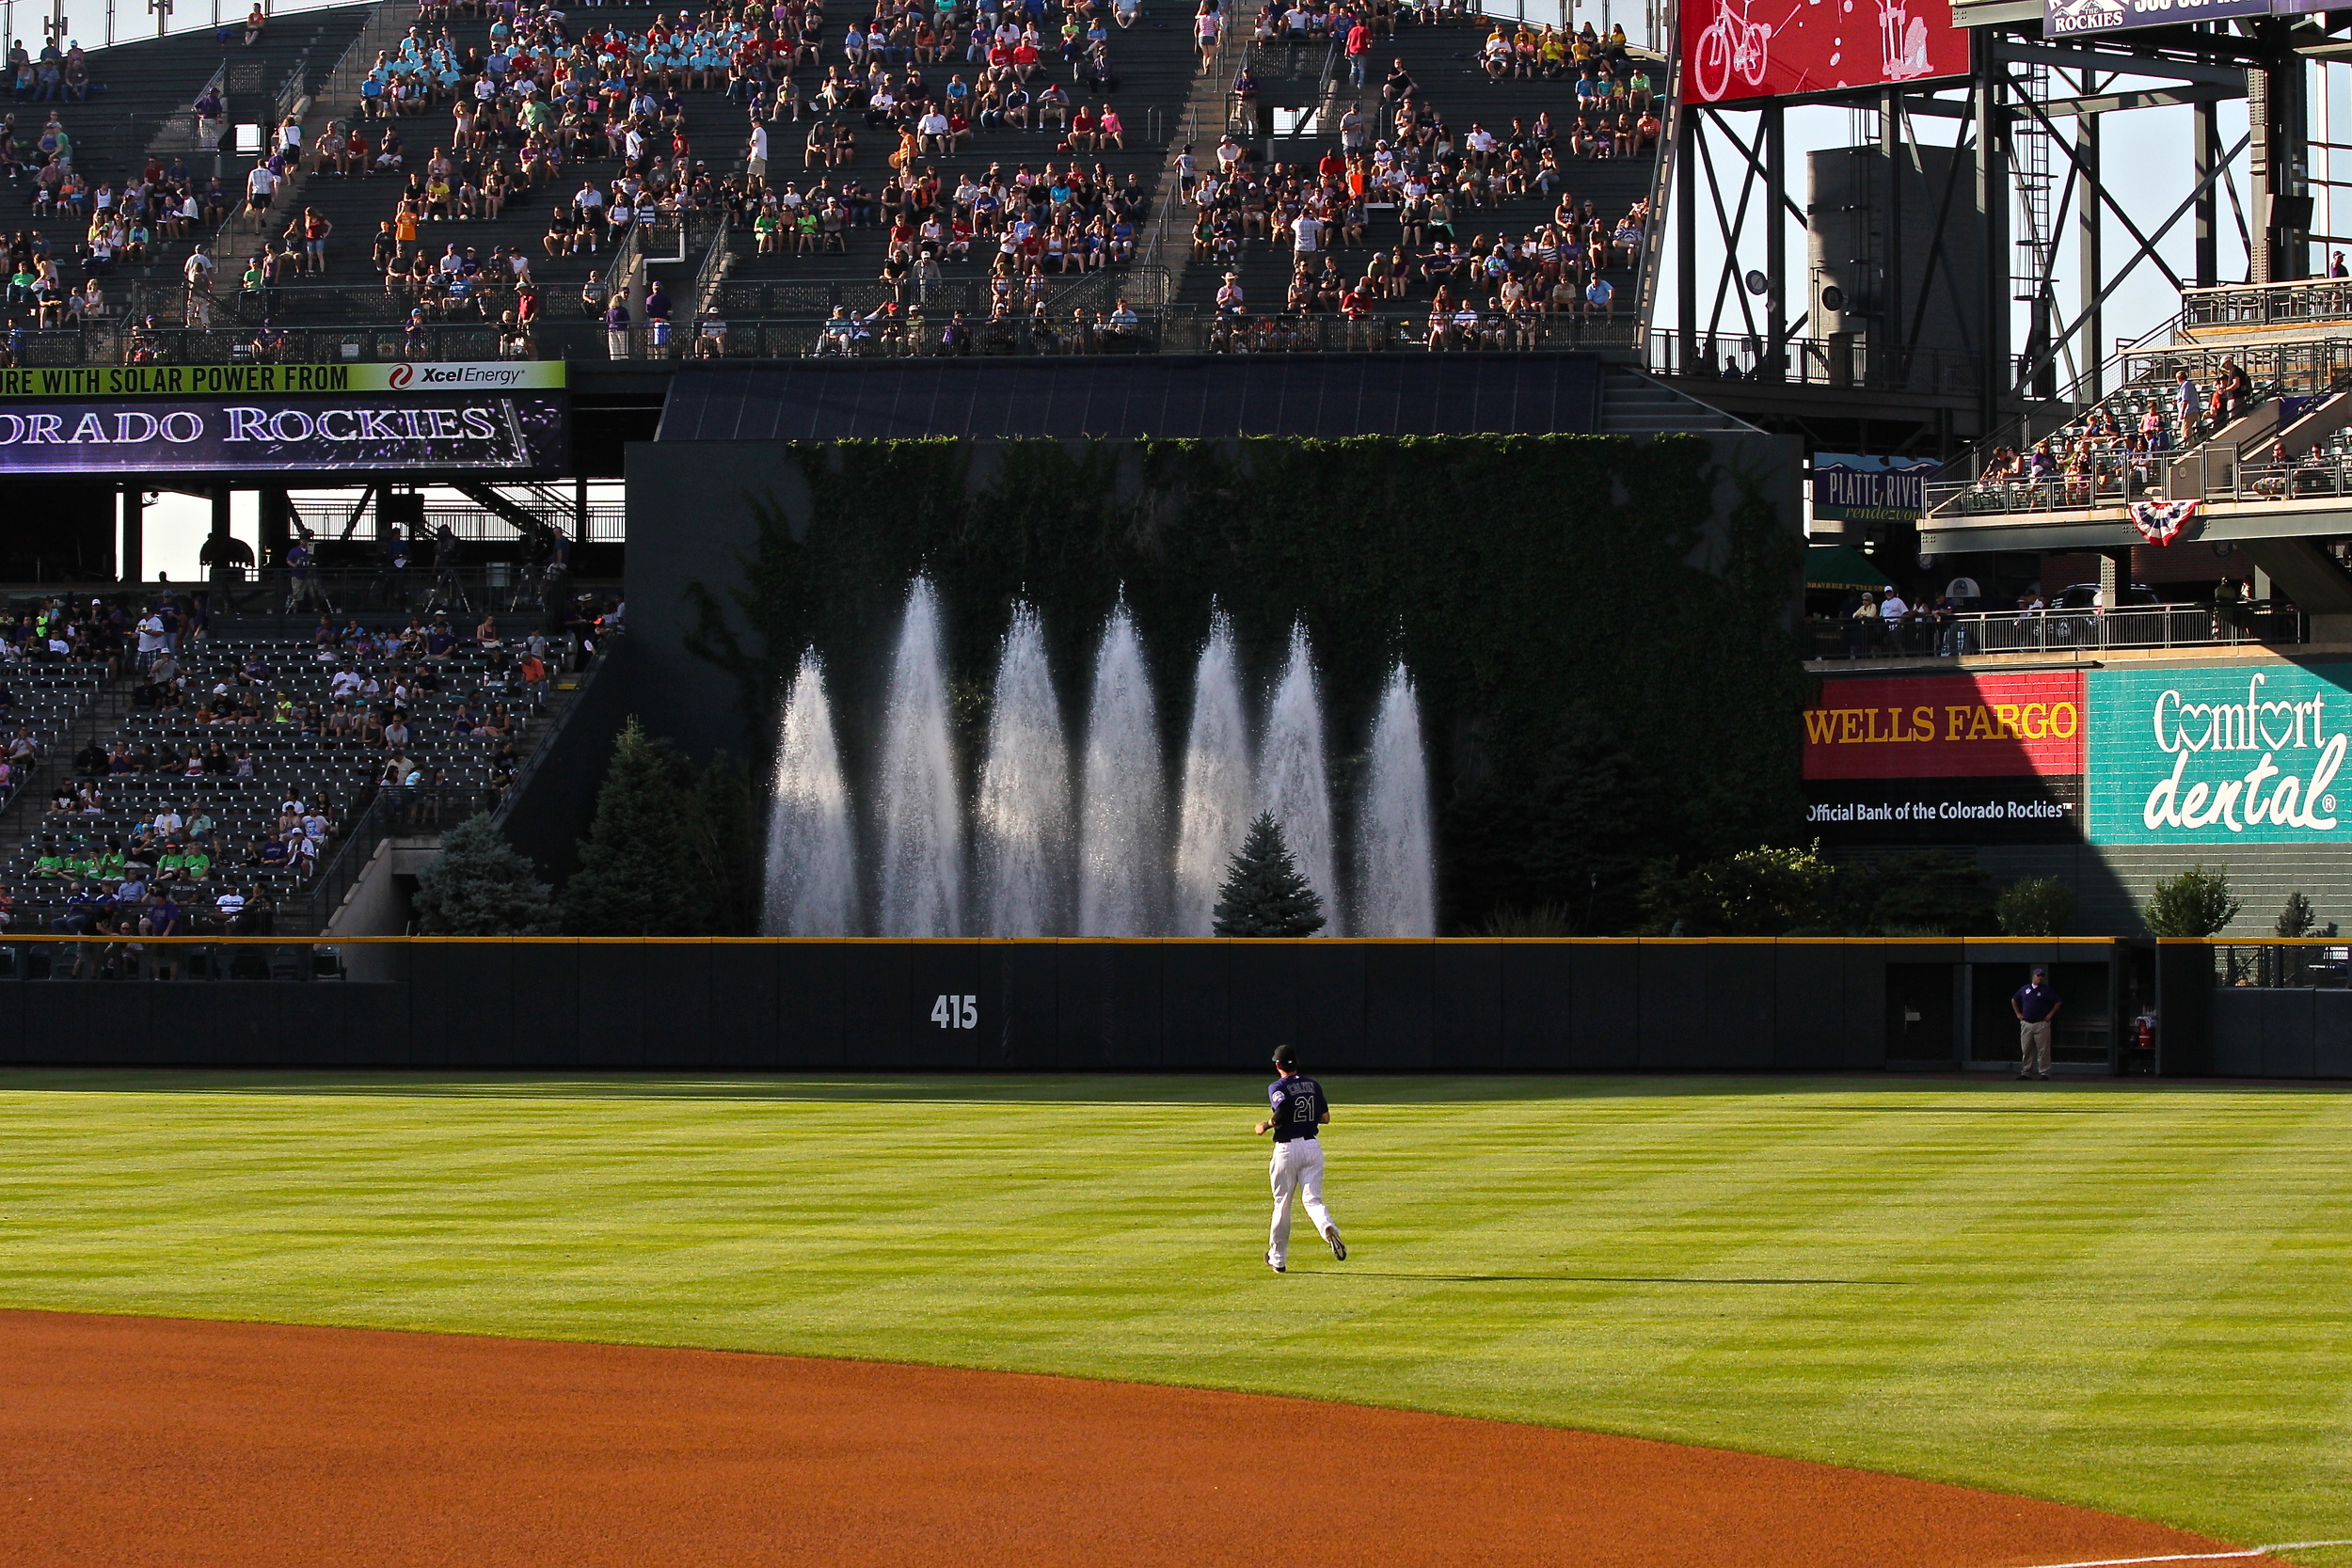 Fountains in center field